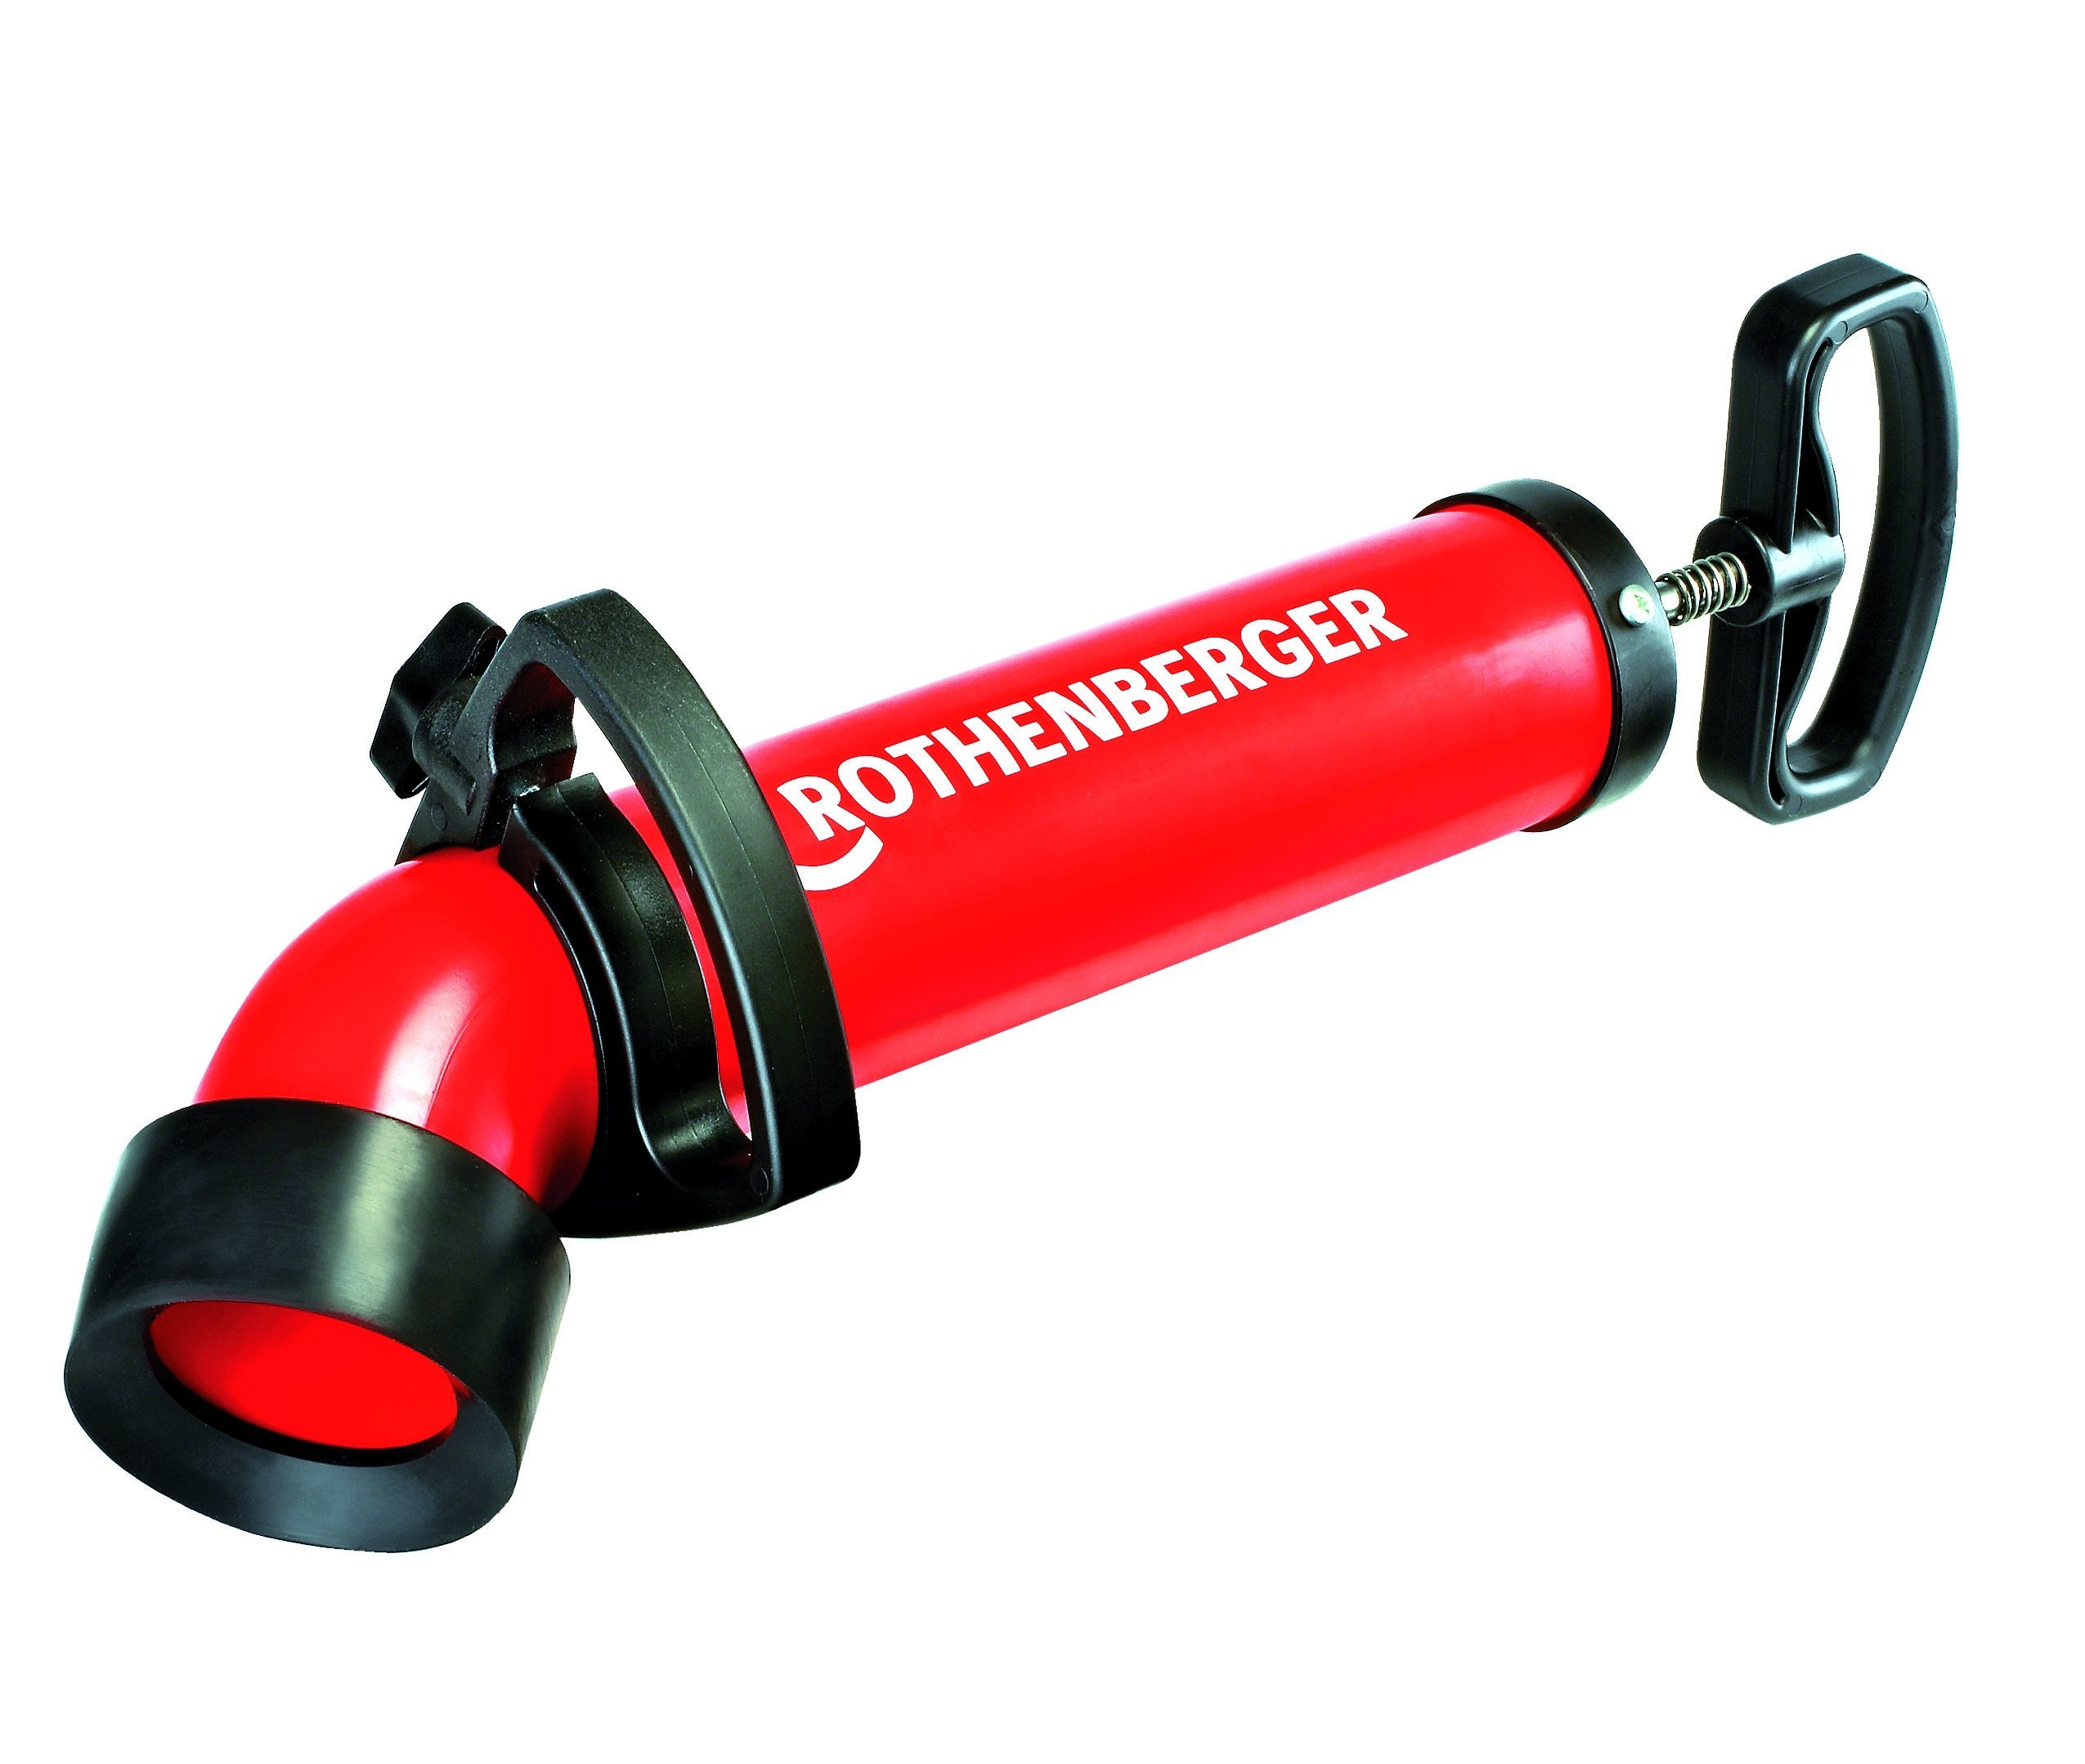 ROTHENBERGER 072070X - Bomba desatascad. ropump super plus product image